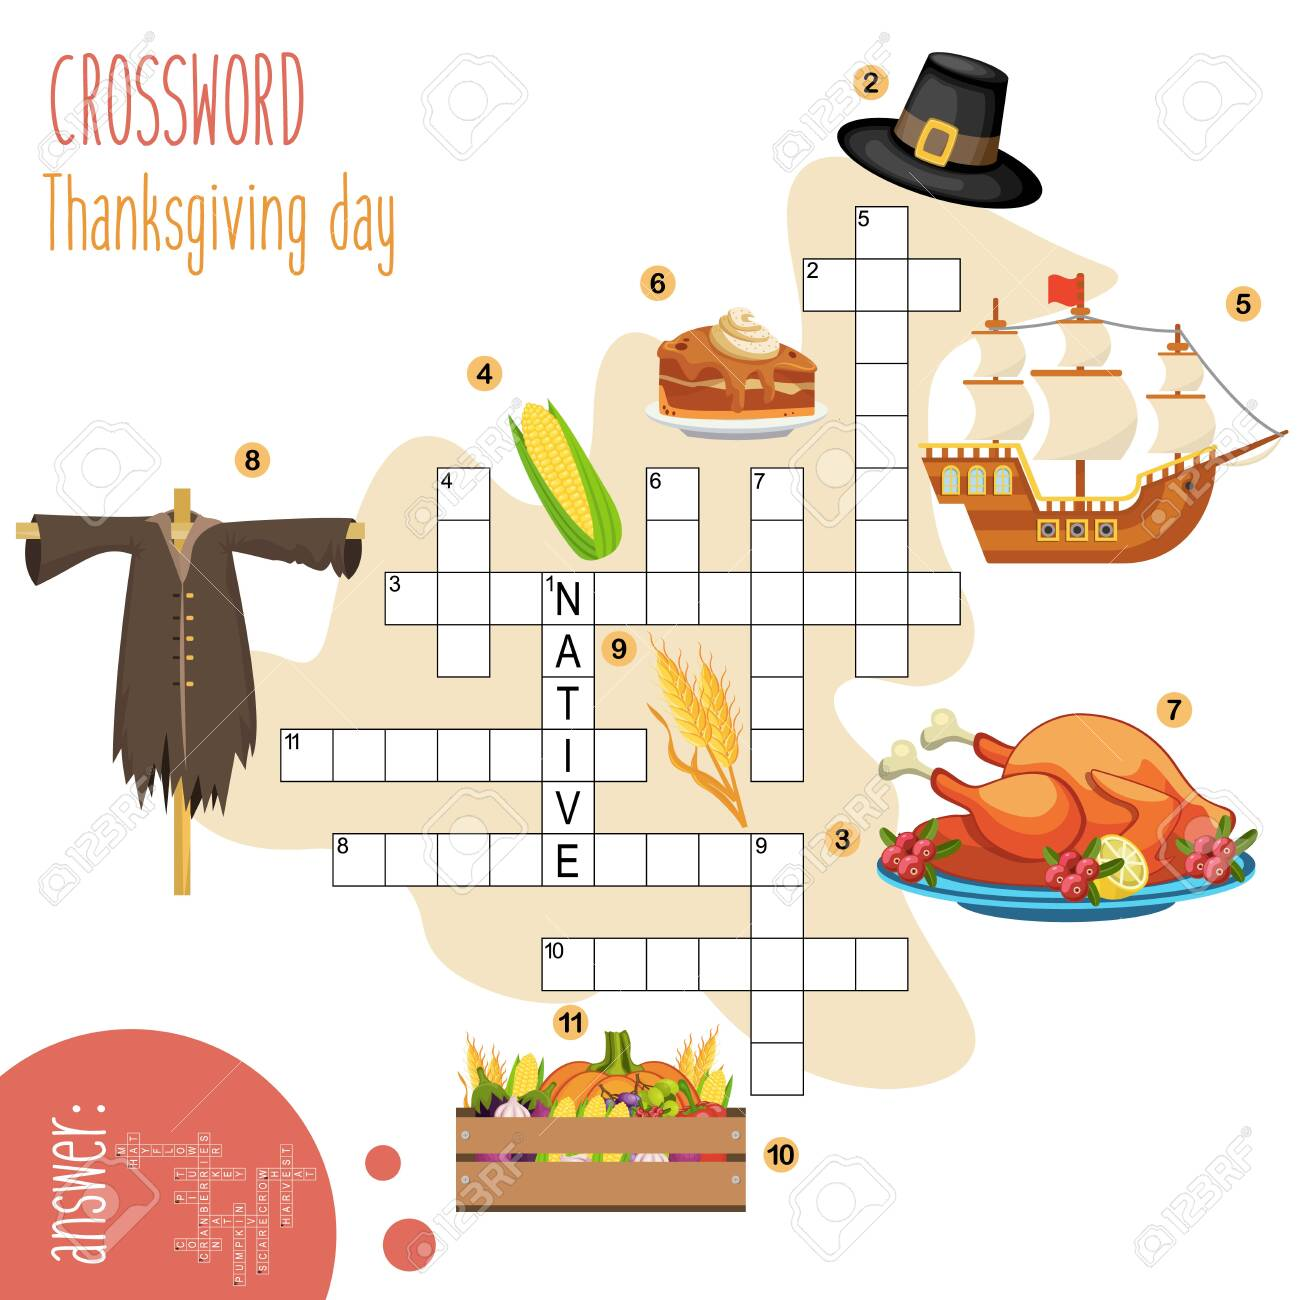 Easy Crossword Puzzle Thanksgiving Day For Children In Elementary Royalty Free Cliparts Vectors And Stock Illustration Image 152029124